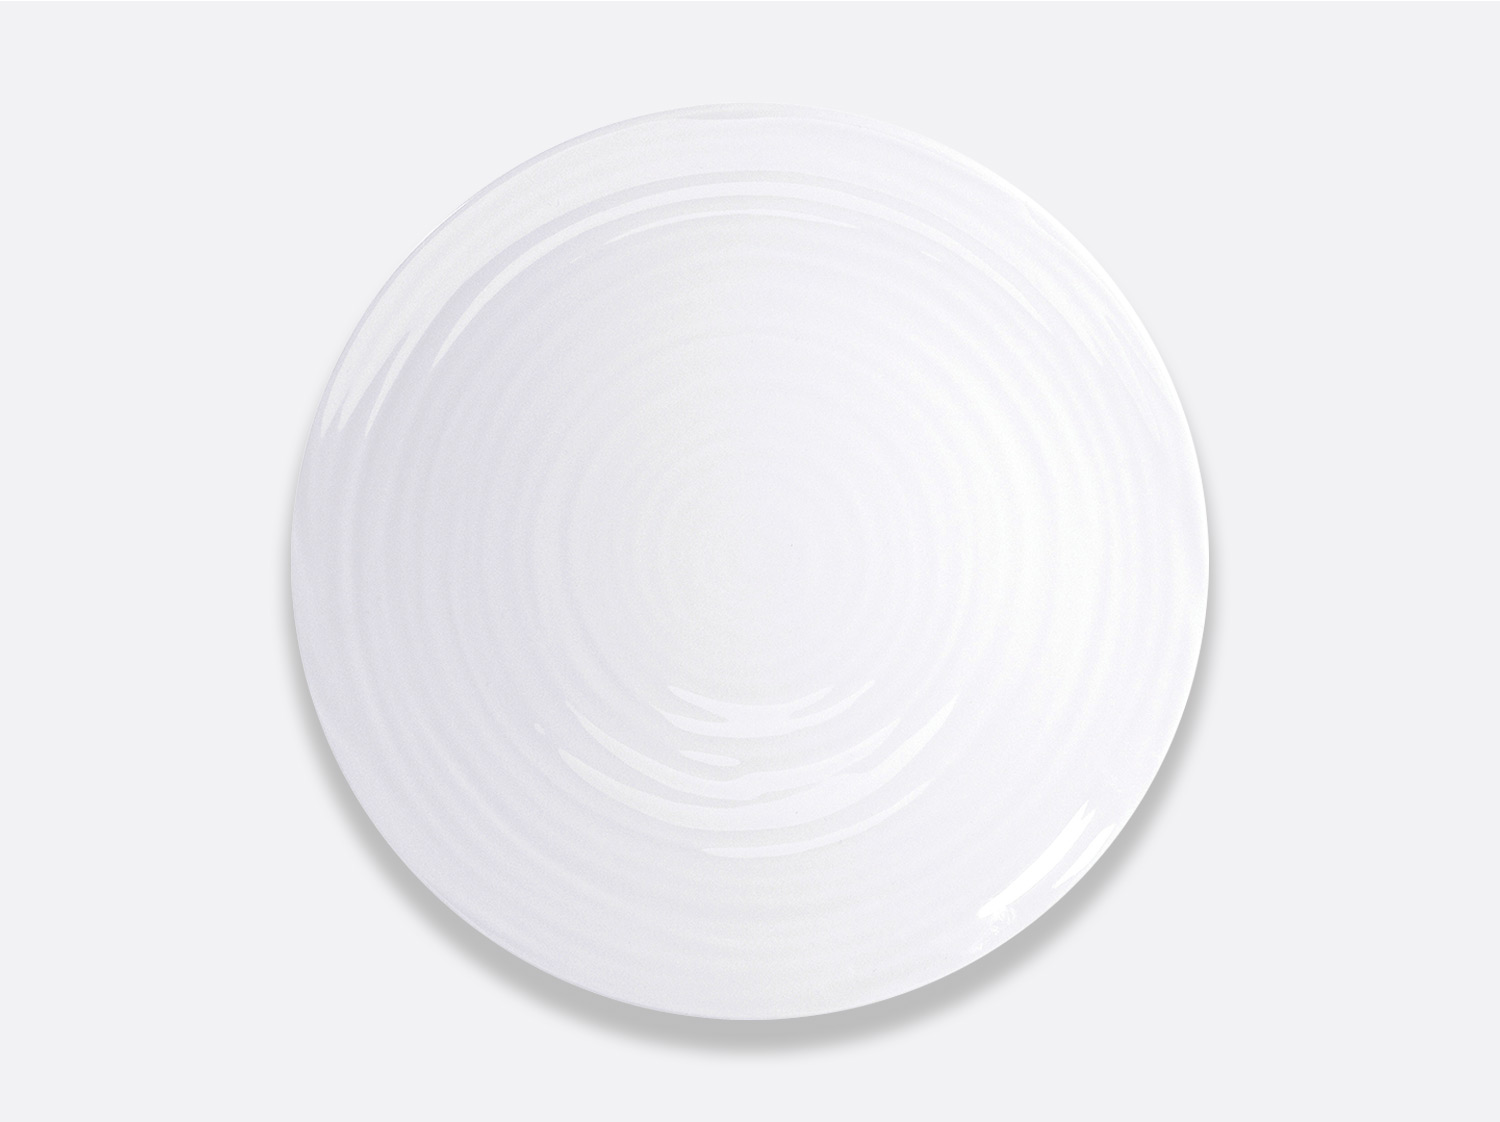 Assiette coupe 31 cm en porcelaine de la collection Origine Bernardaud